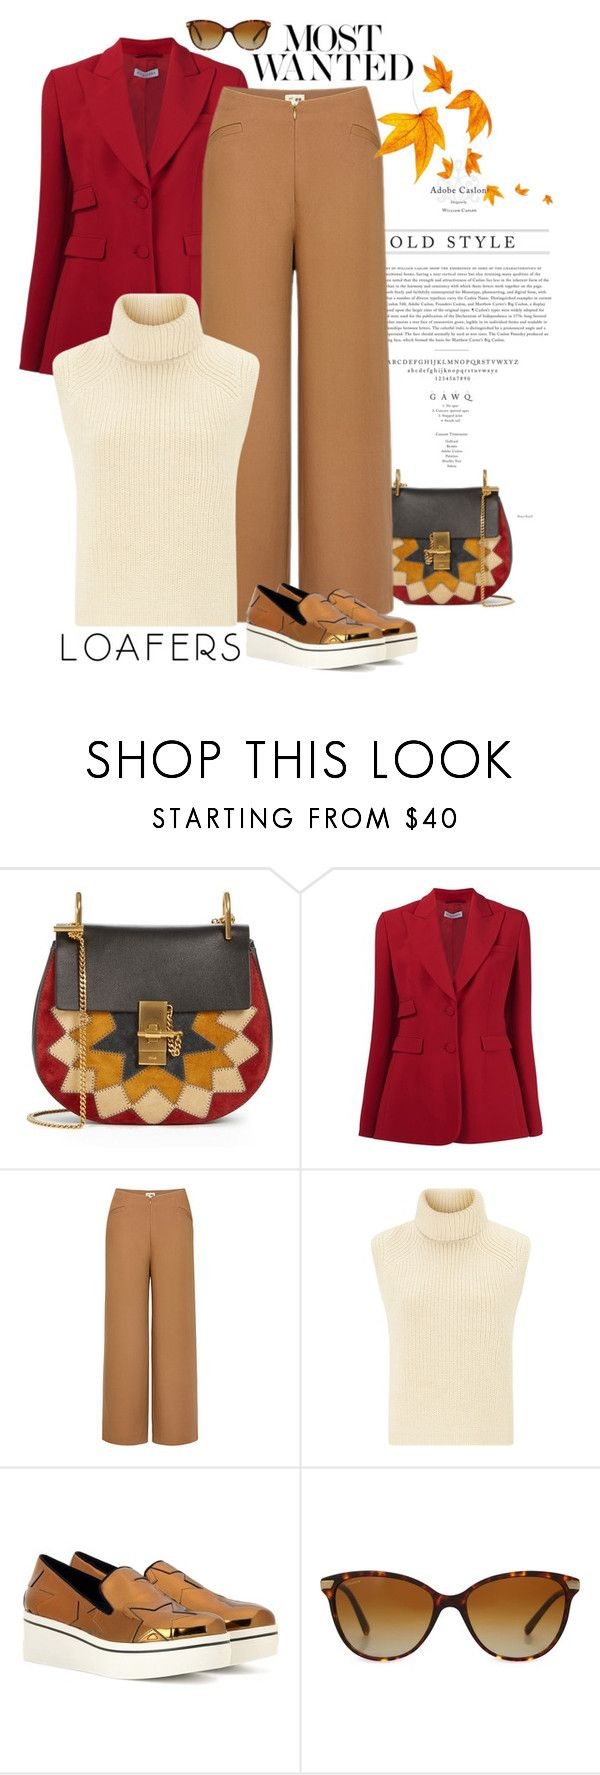 """""""Fall Footwear Trend: Loafers"""" by frechelibelle ❤ liked on Polyvore featuring Behance, Chloé, Altuzarra, Uniqlo, Étoile Isabel Marant, STELLA McCARTNEY, Gianvito Rossi, Burberry, loafers and metallic"""